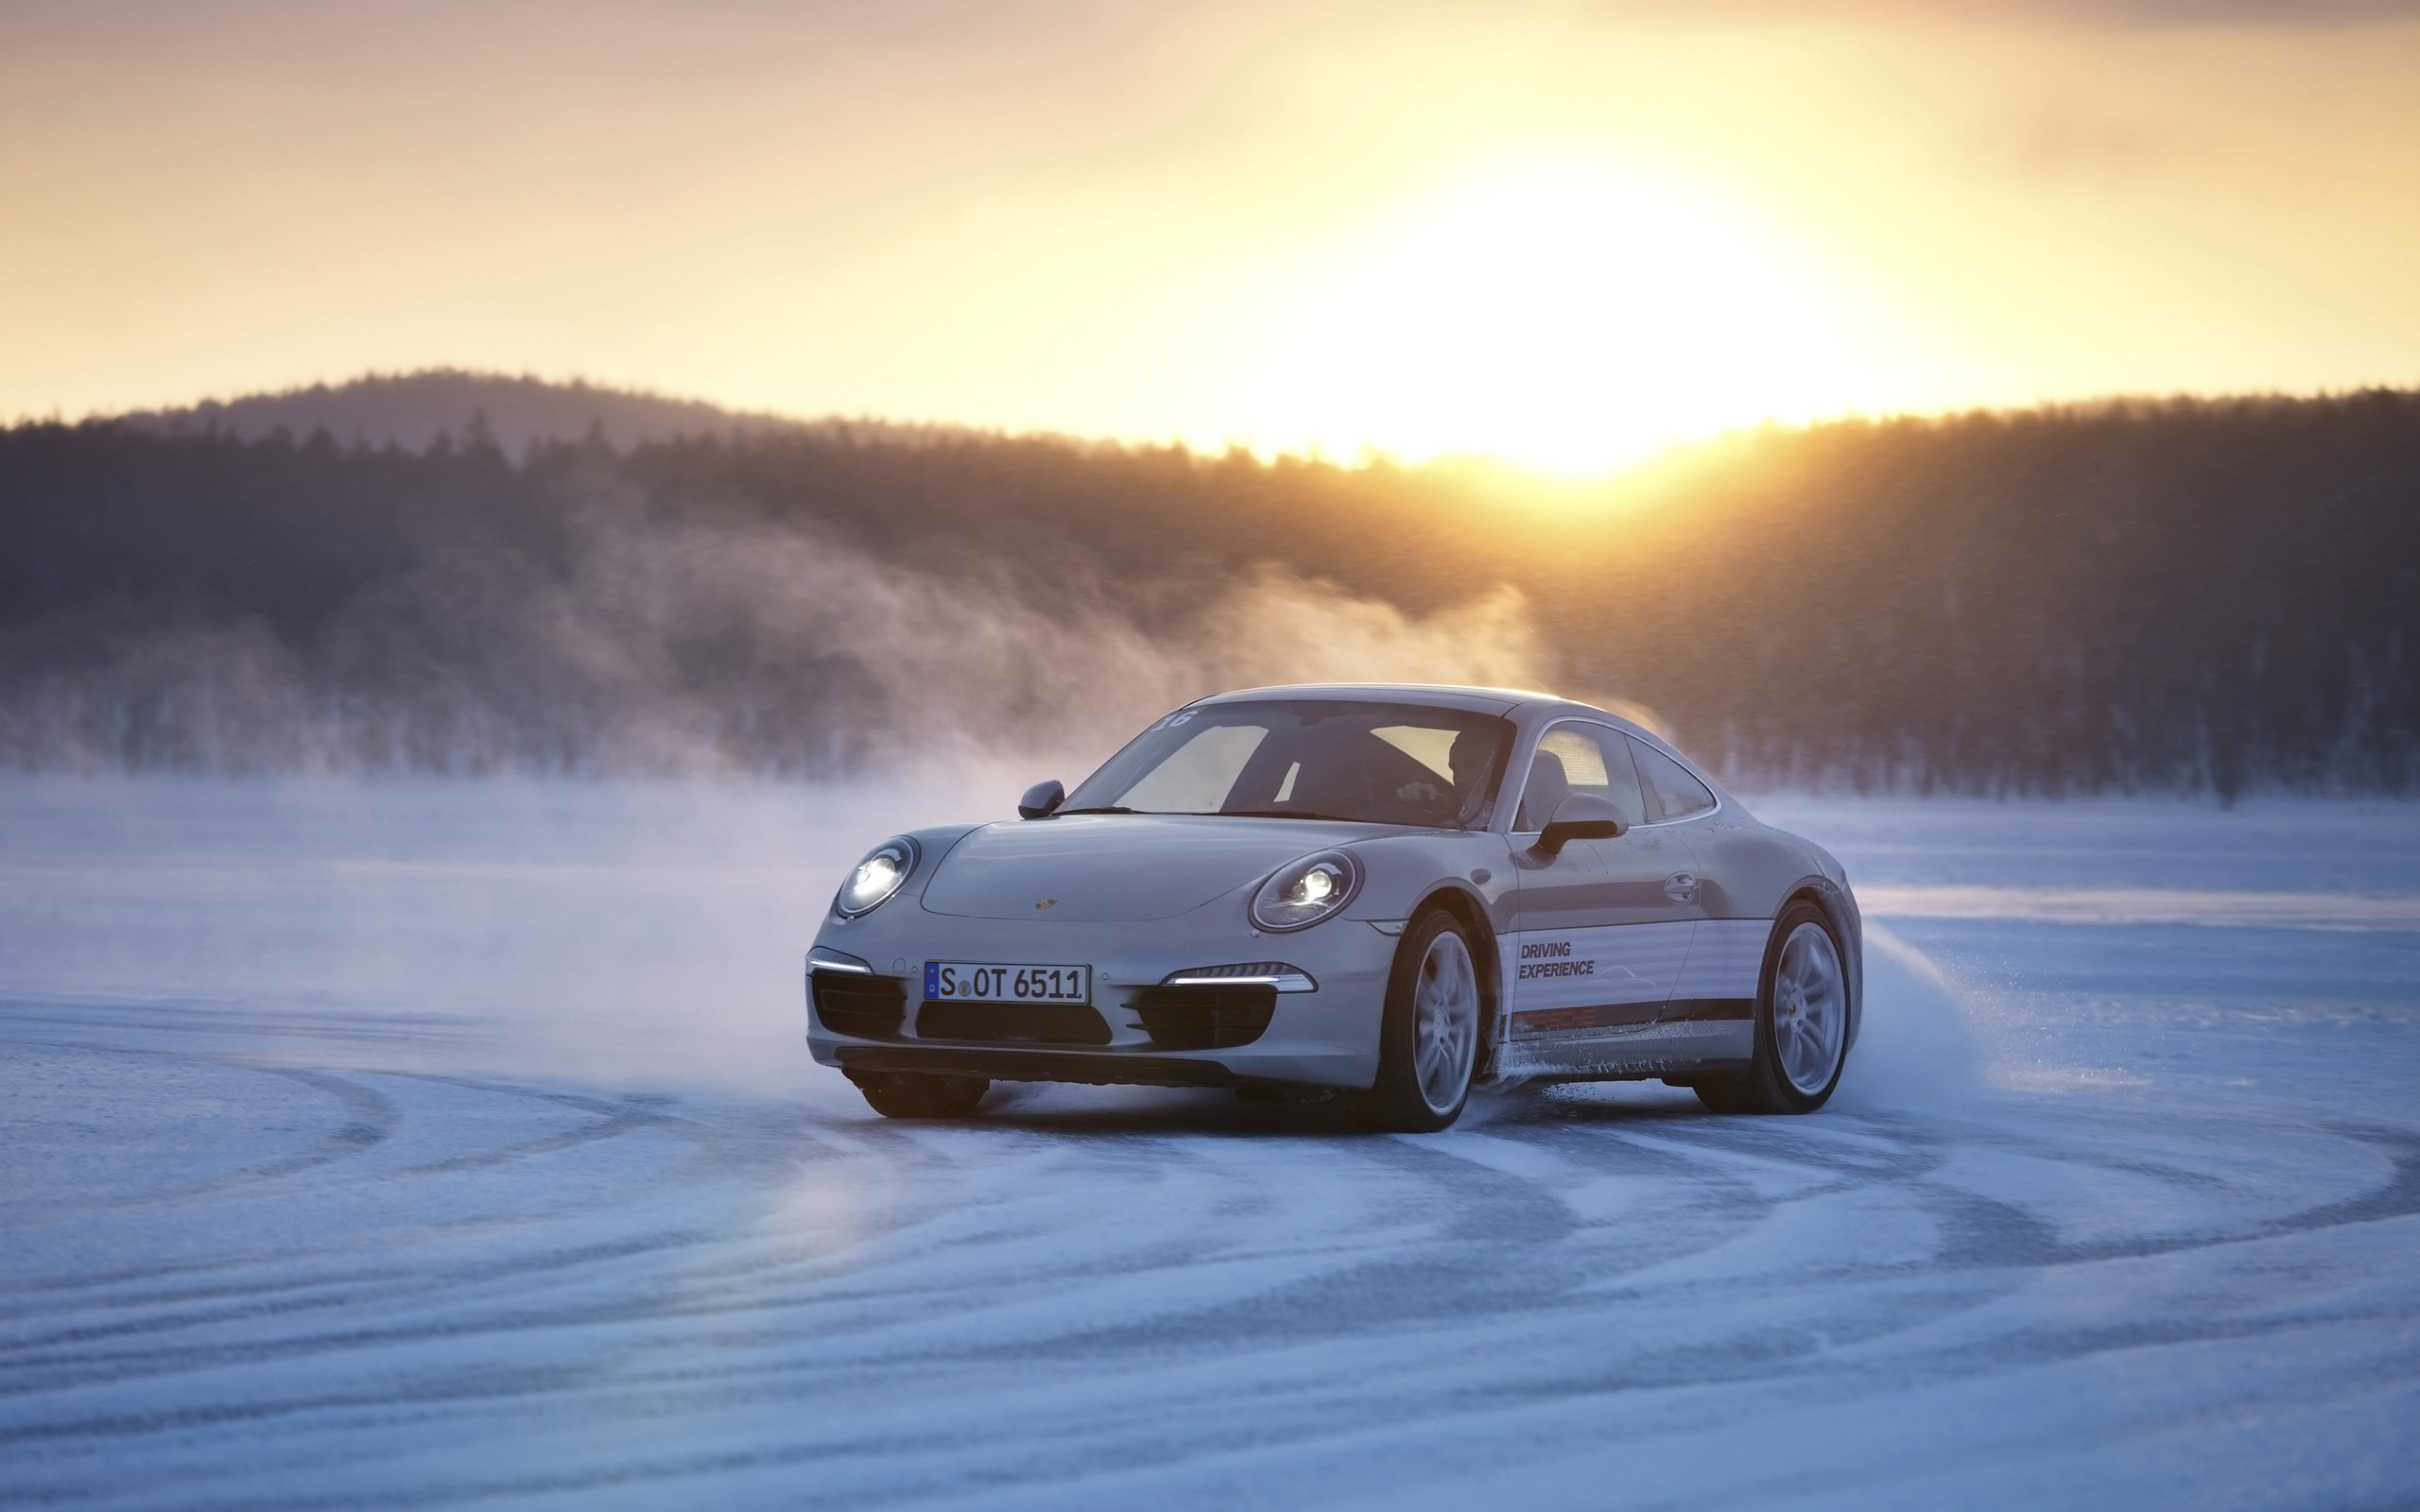 porsche 911 snow, hd cars, 4k wallpapers, images, backgrounds